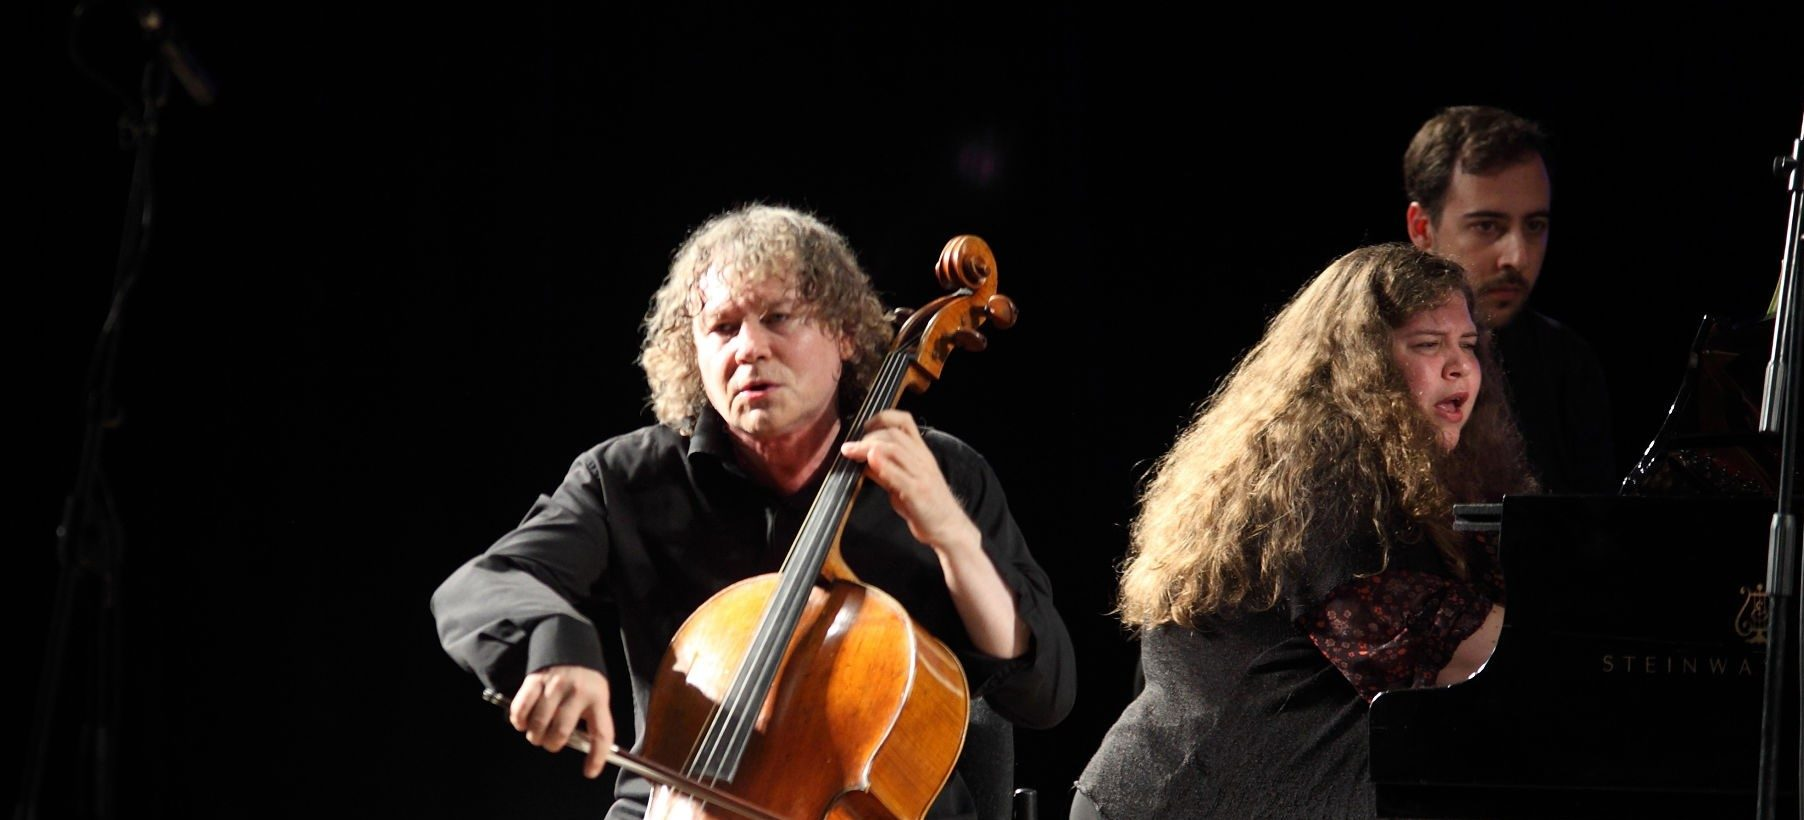 Musicians Alexander Knyazev, on cello, and Plamena Mangova, on piano, perform on stage at the Jerusalem International YMCA Concert Hall during the 19th Jerusalem International Chamber Music Festival (JCMF), Jerusalem, Israel, September 5, 2016. (Photo by Dan Porges/Getty Images)